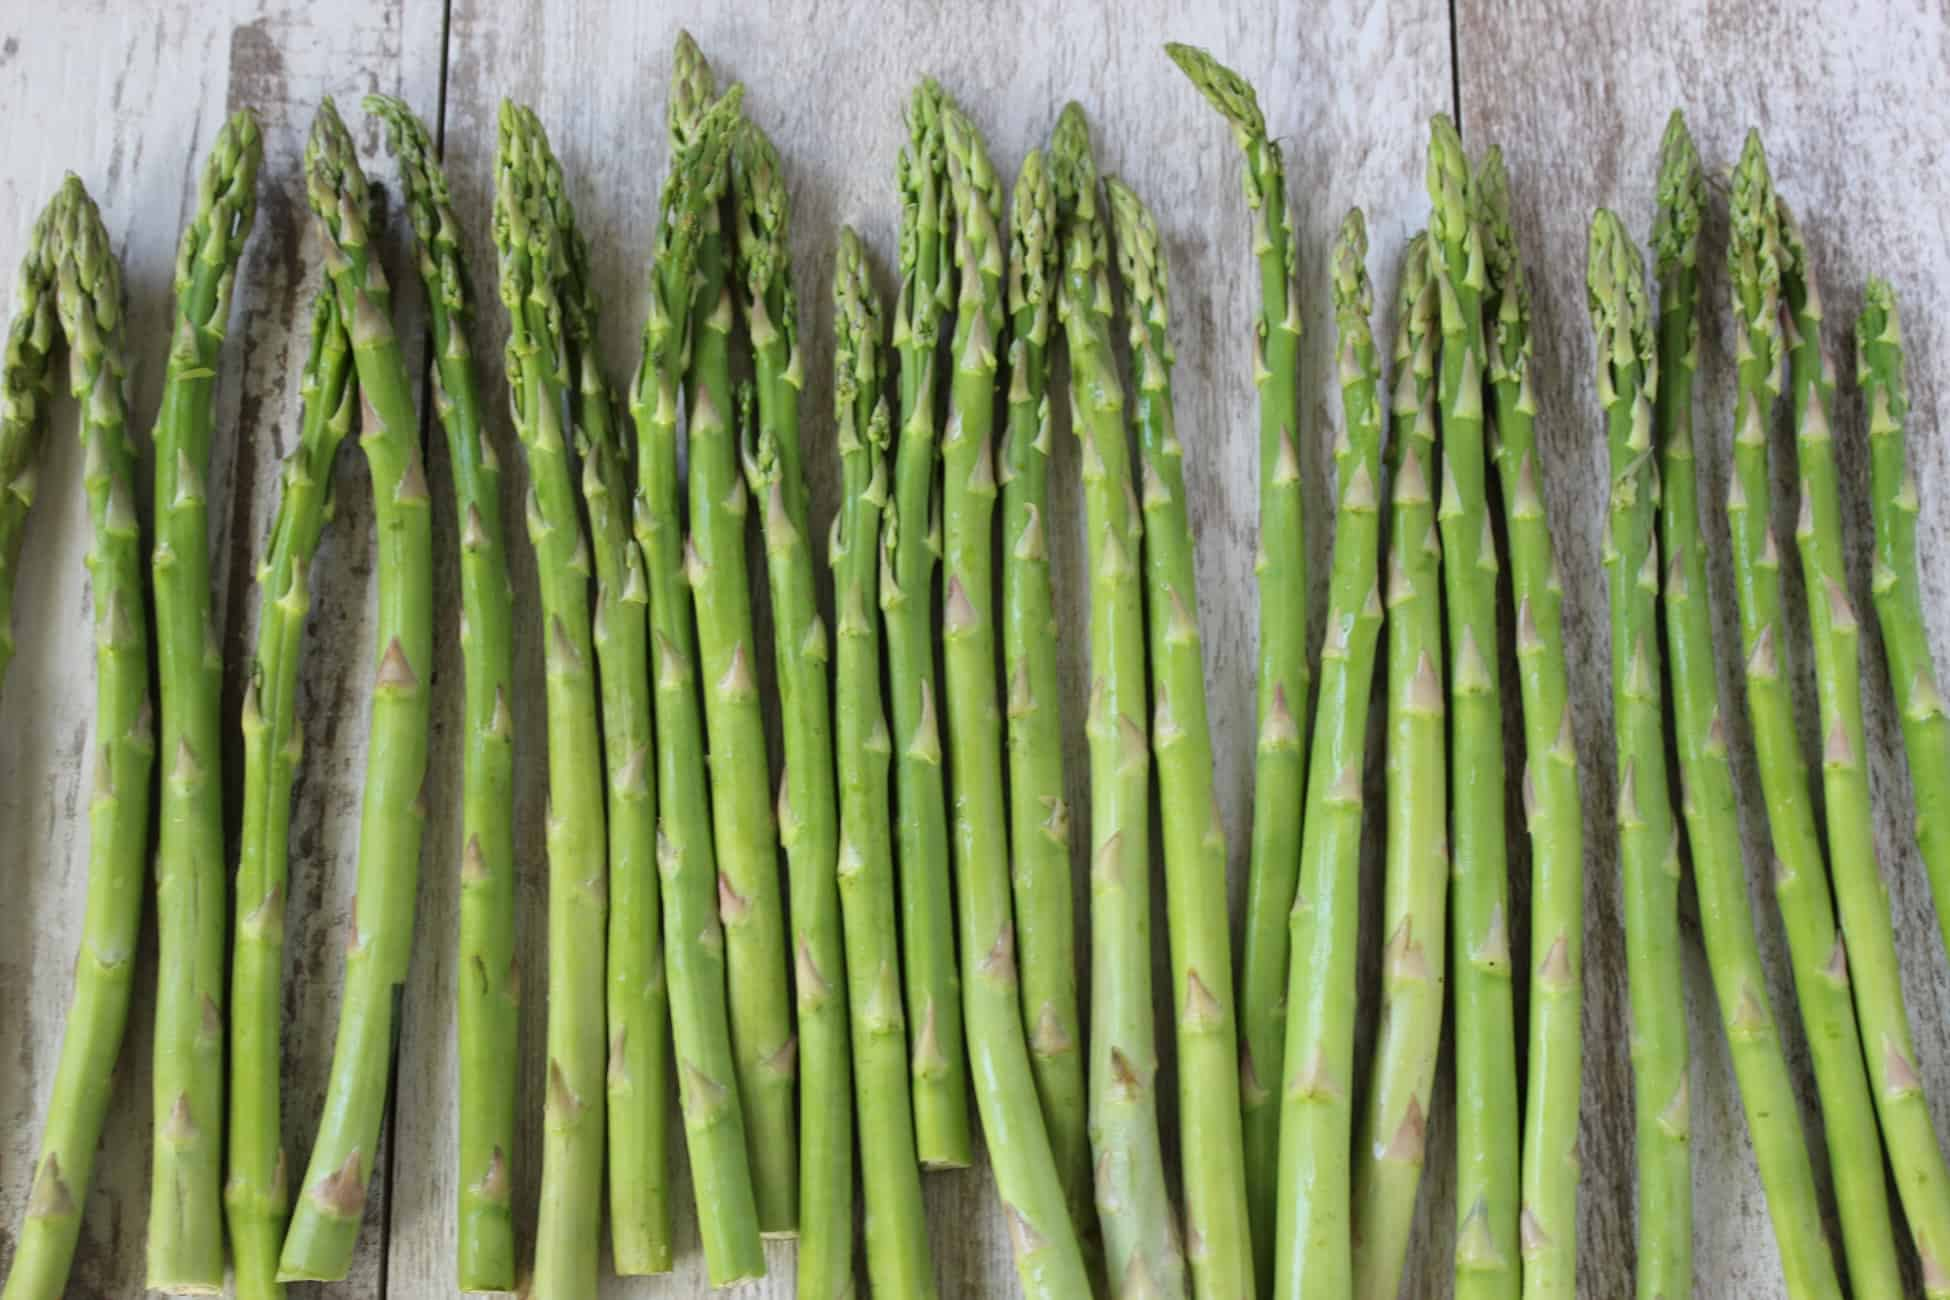 Gains through Asparagus